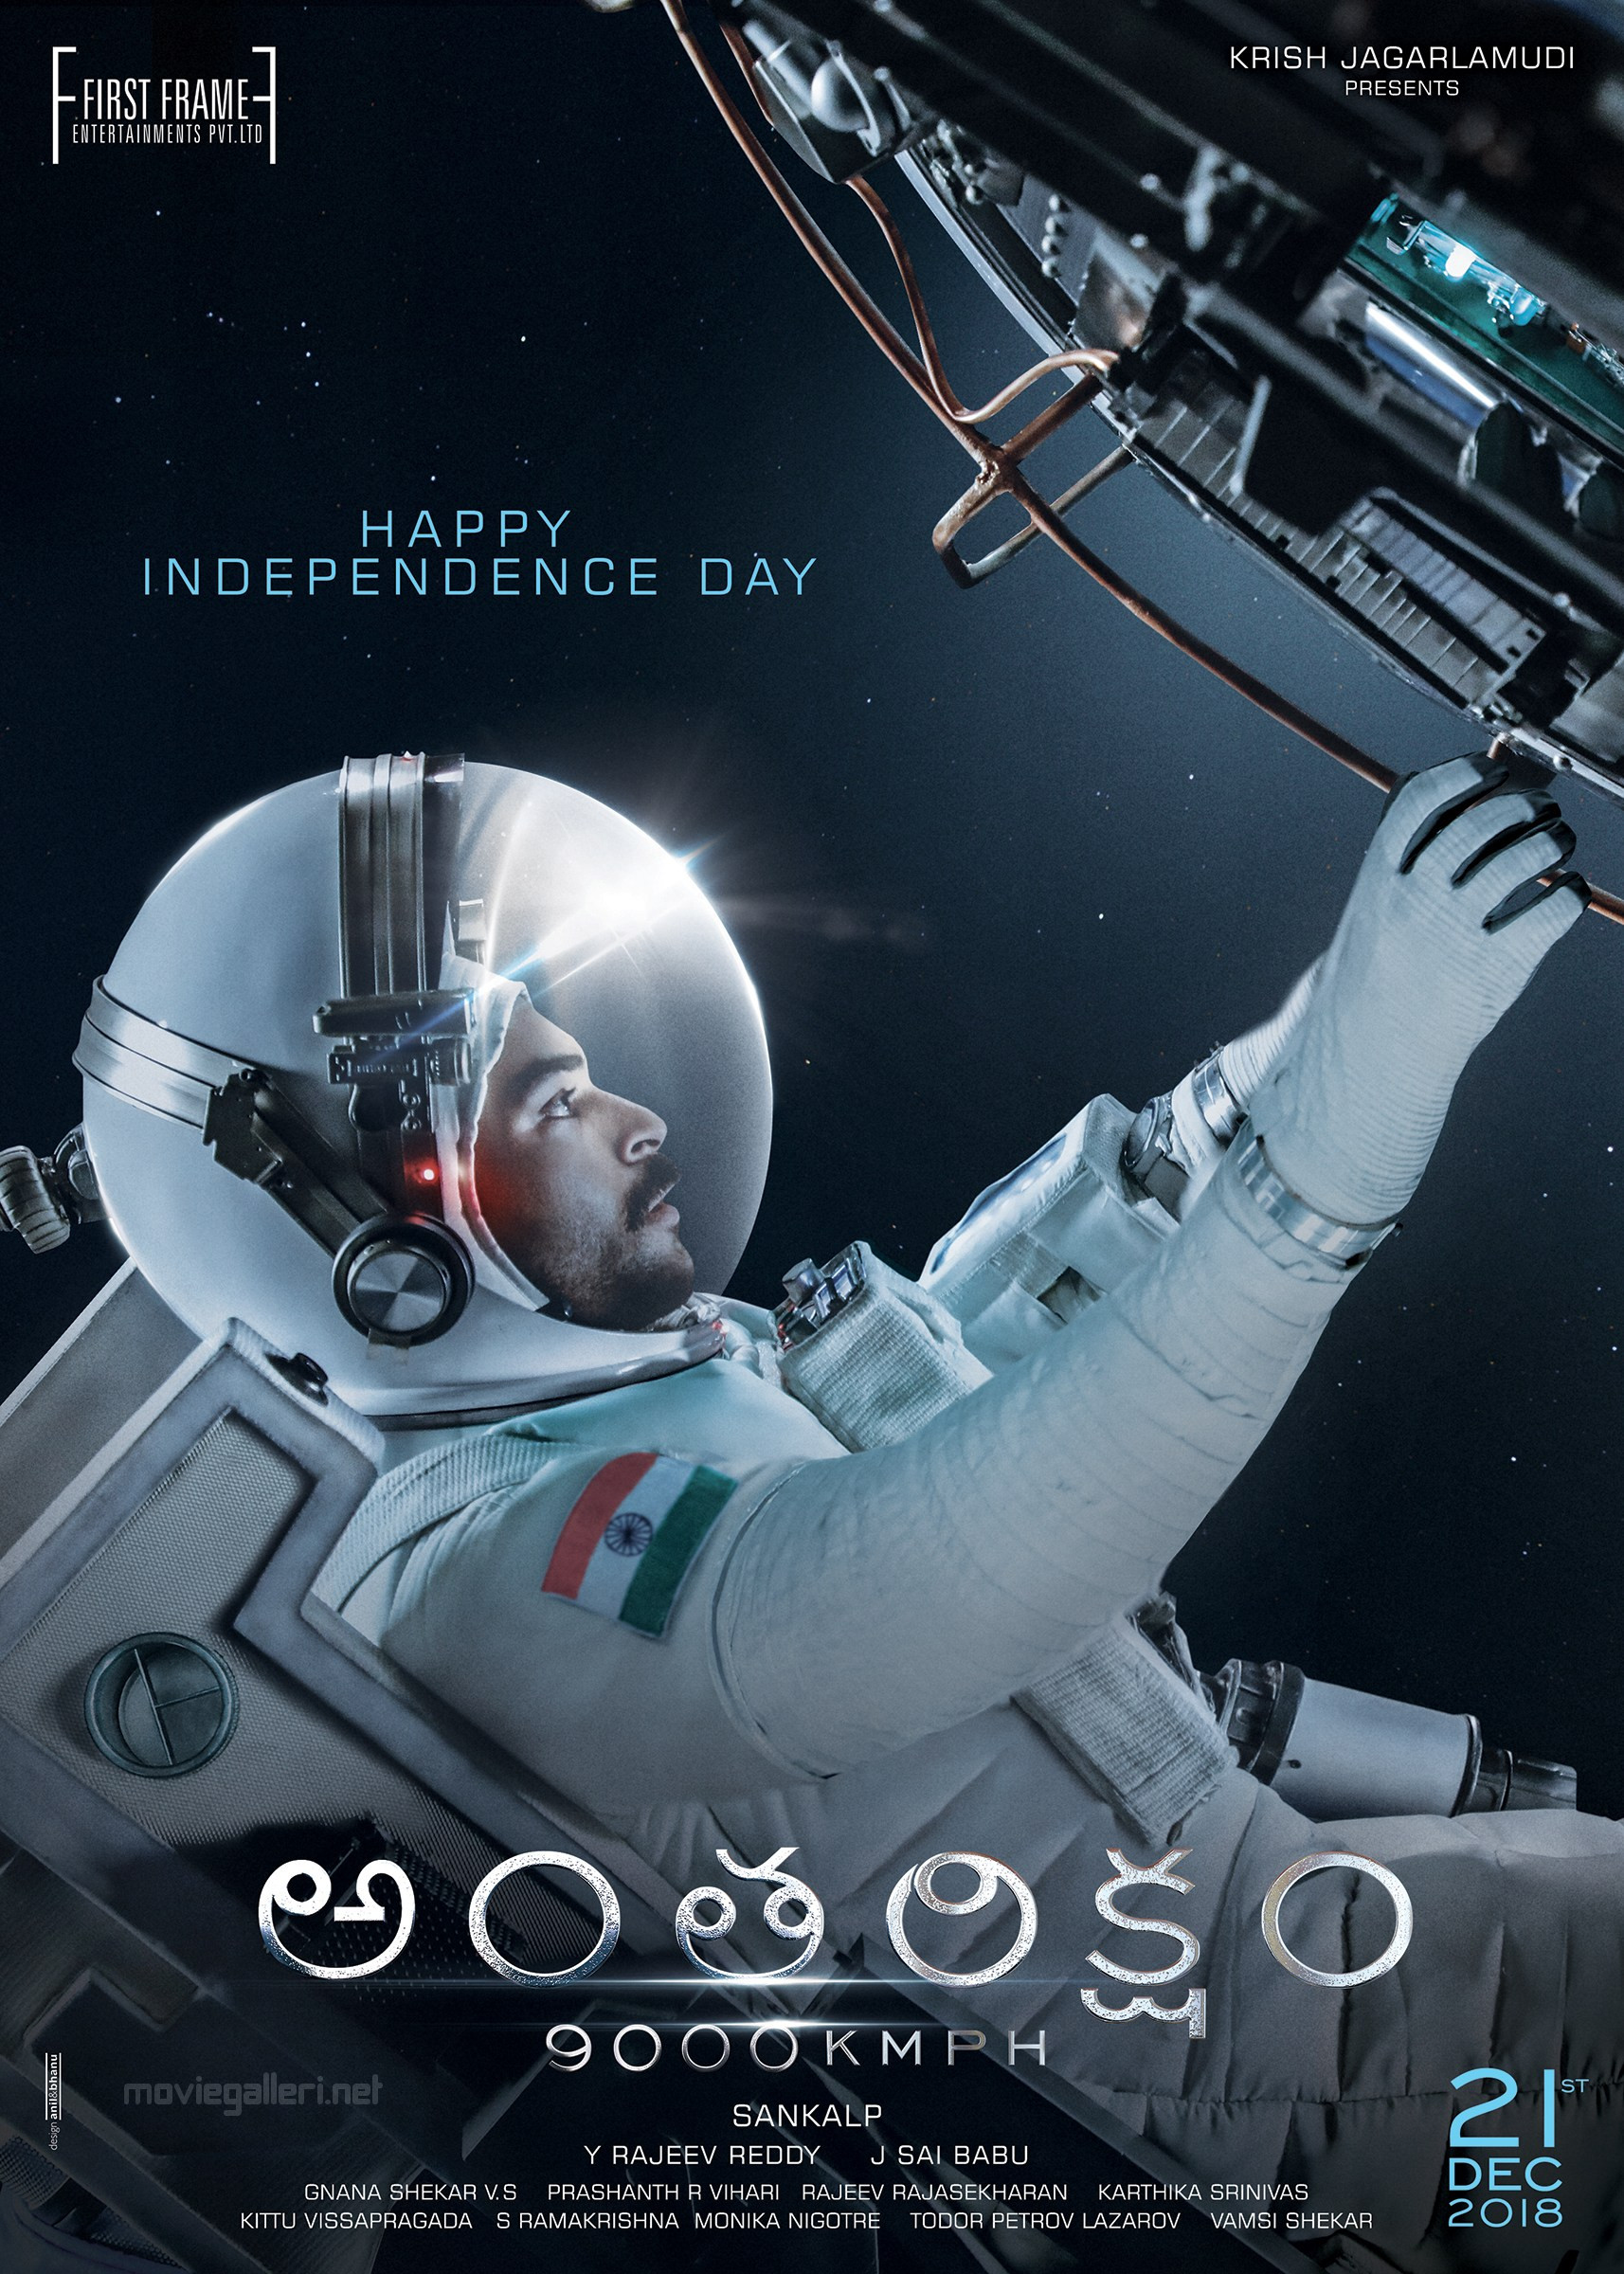 Actor Varun Tej Antariksham 9000kmph Movie First Look Poster HD